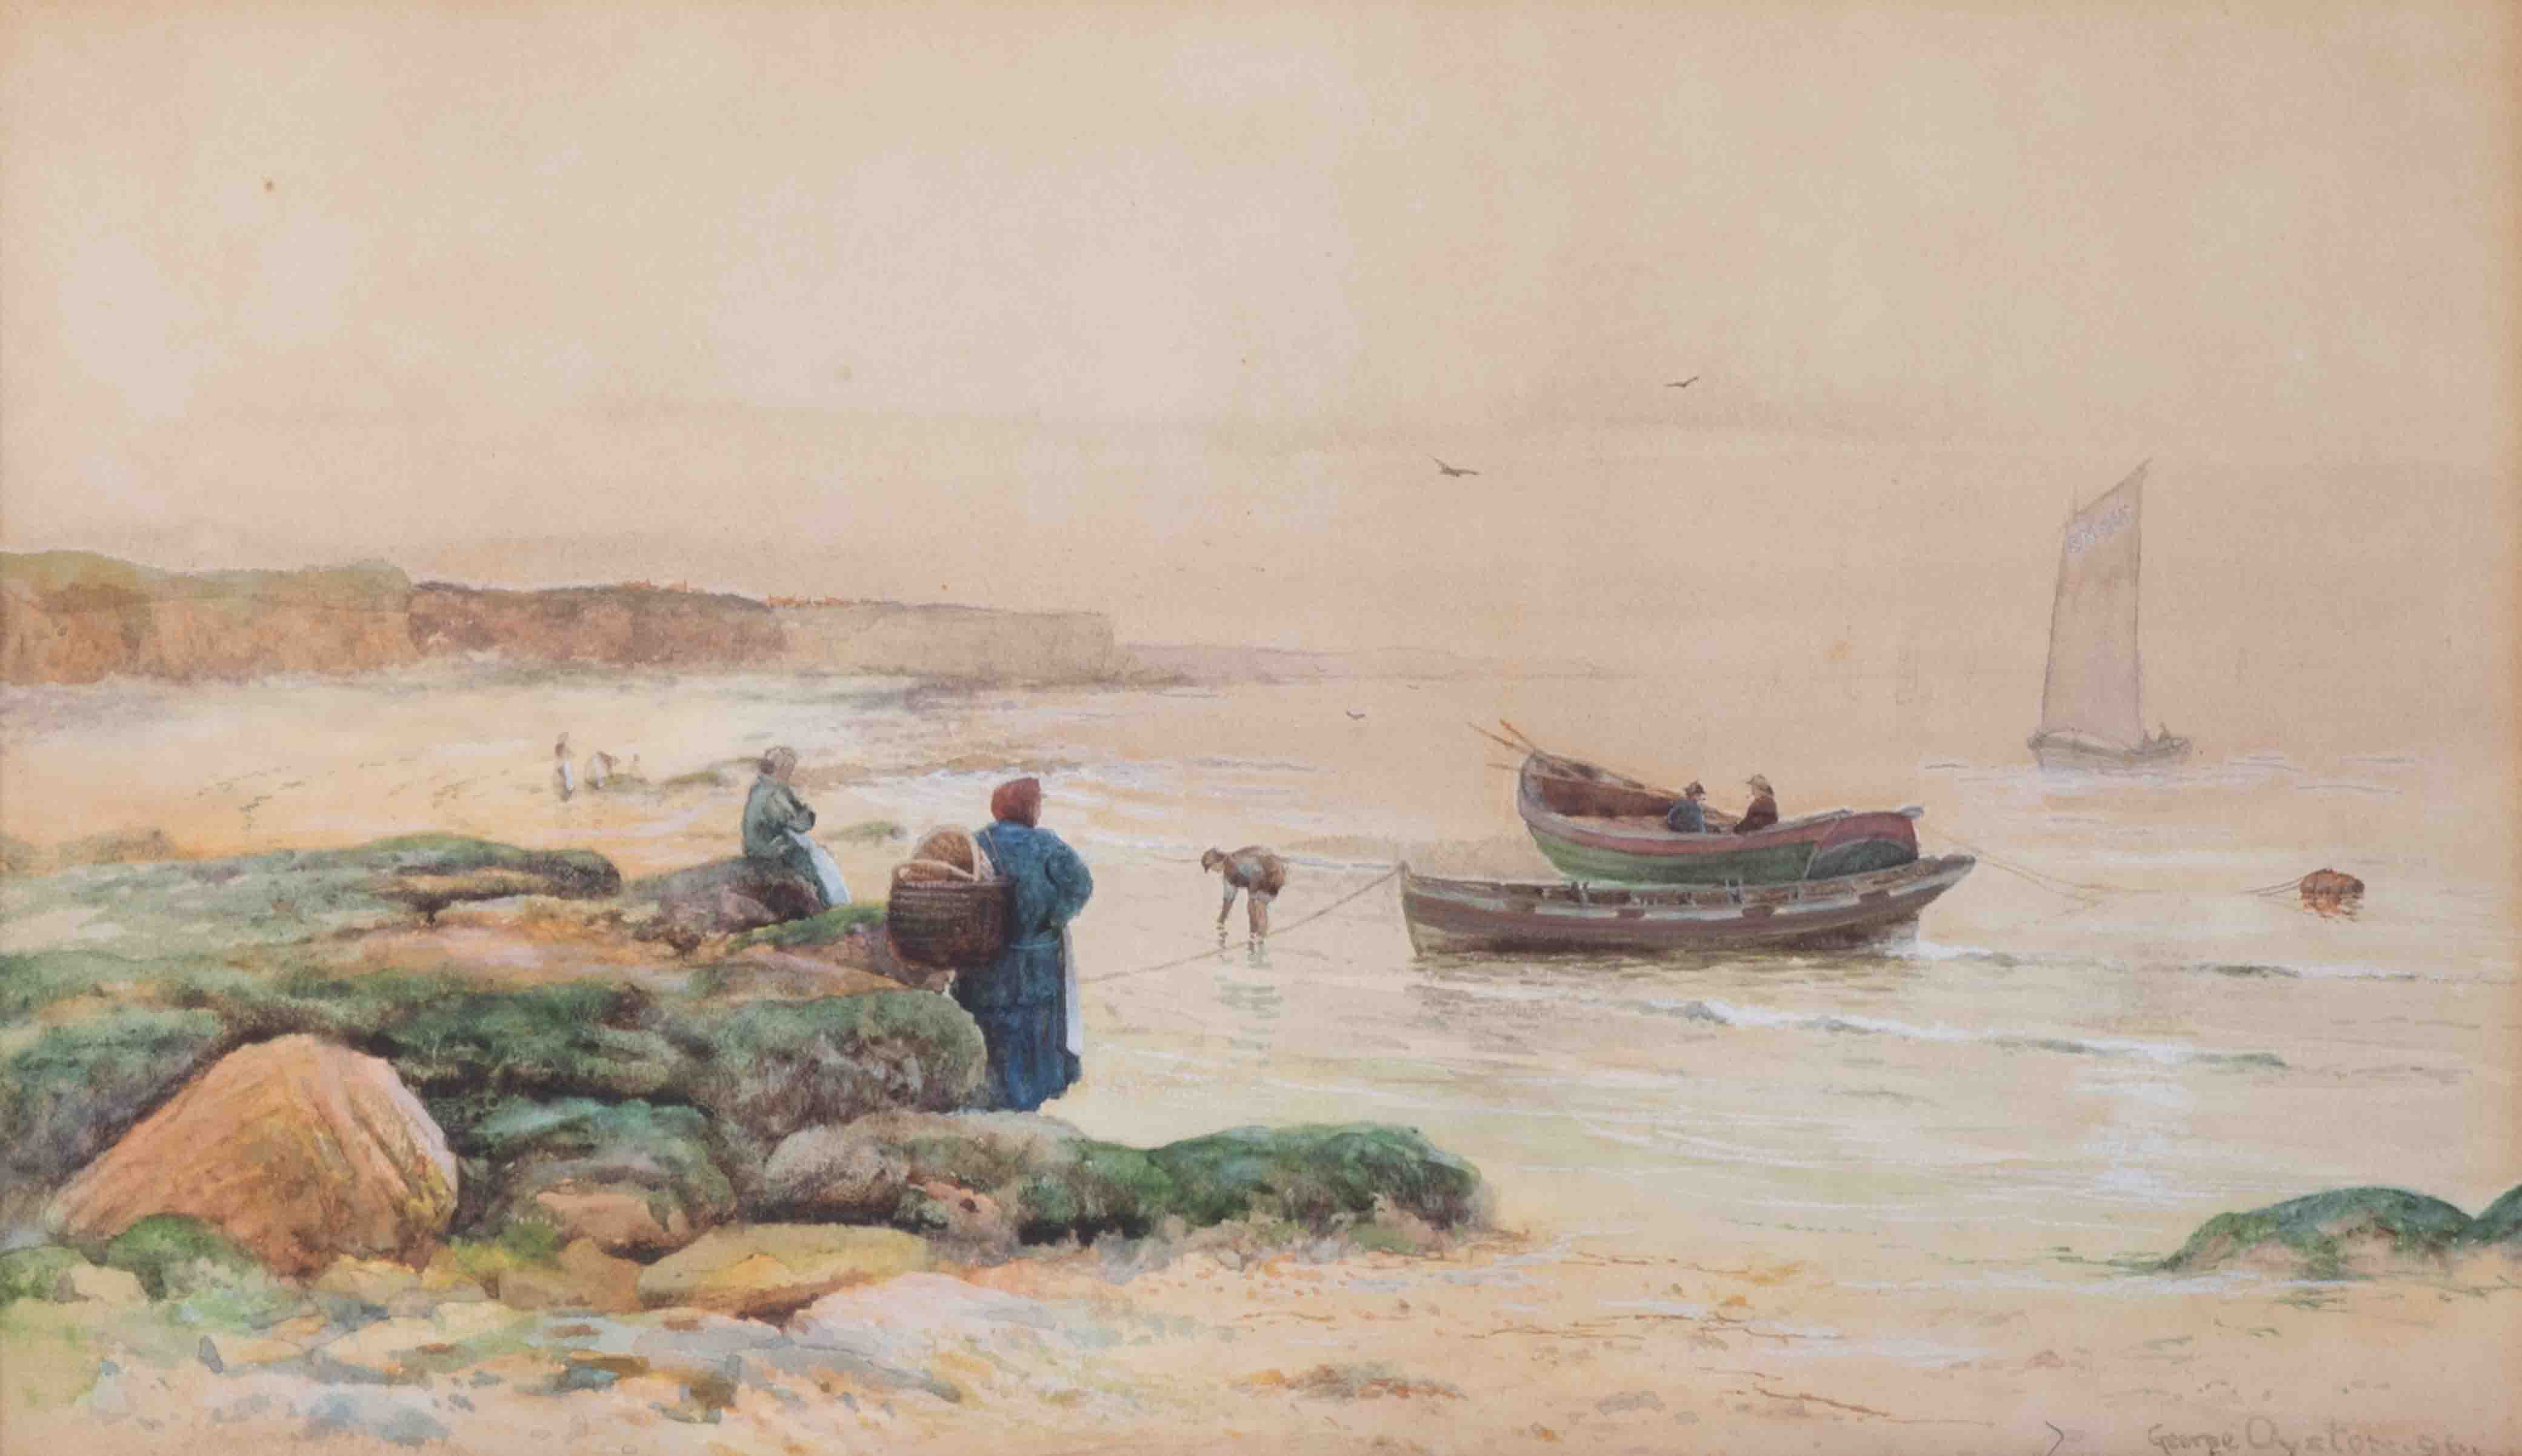 George Oyston (1861-1937), 1896 signed watercolour, 'Figures on the beach, fishing boats', 20cm x - Image 2 of 2